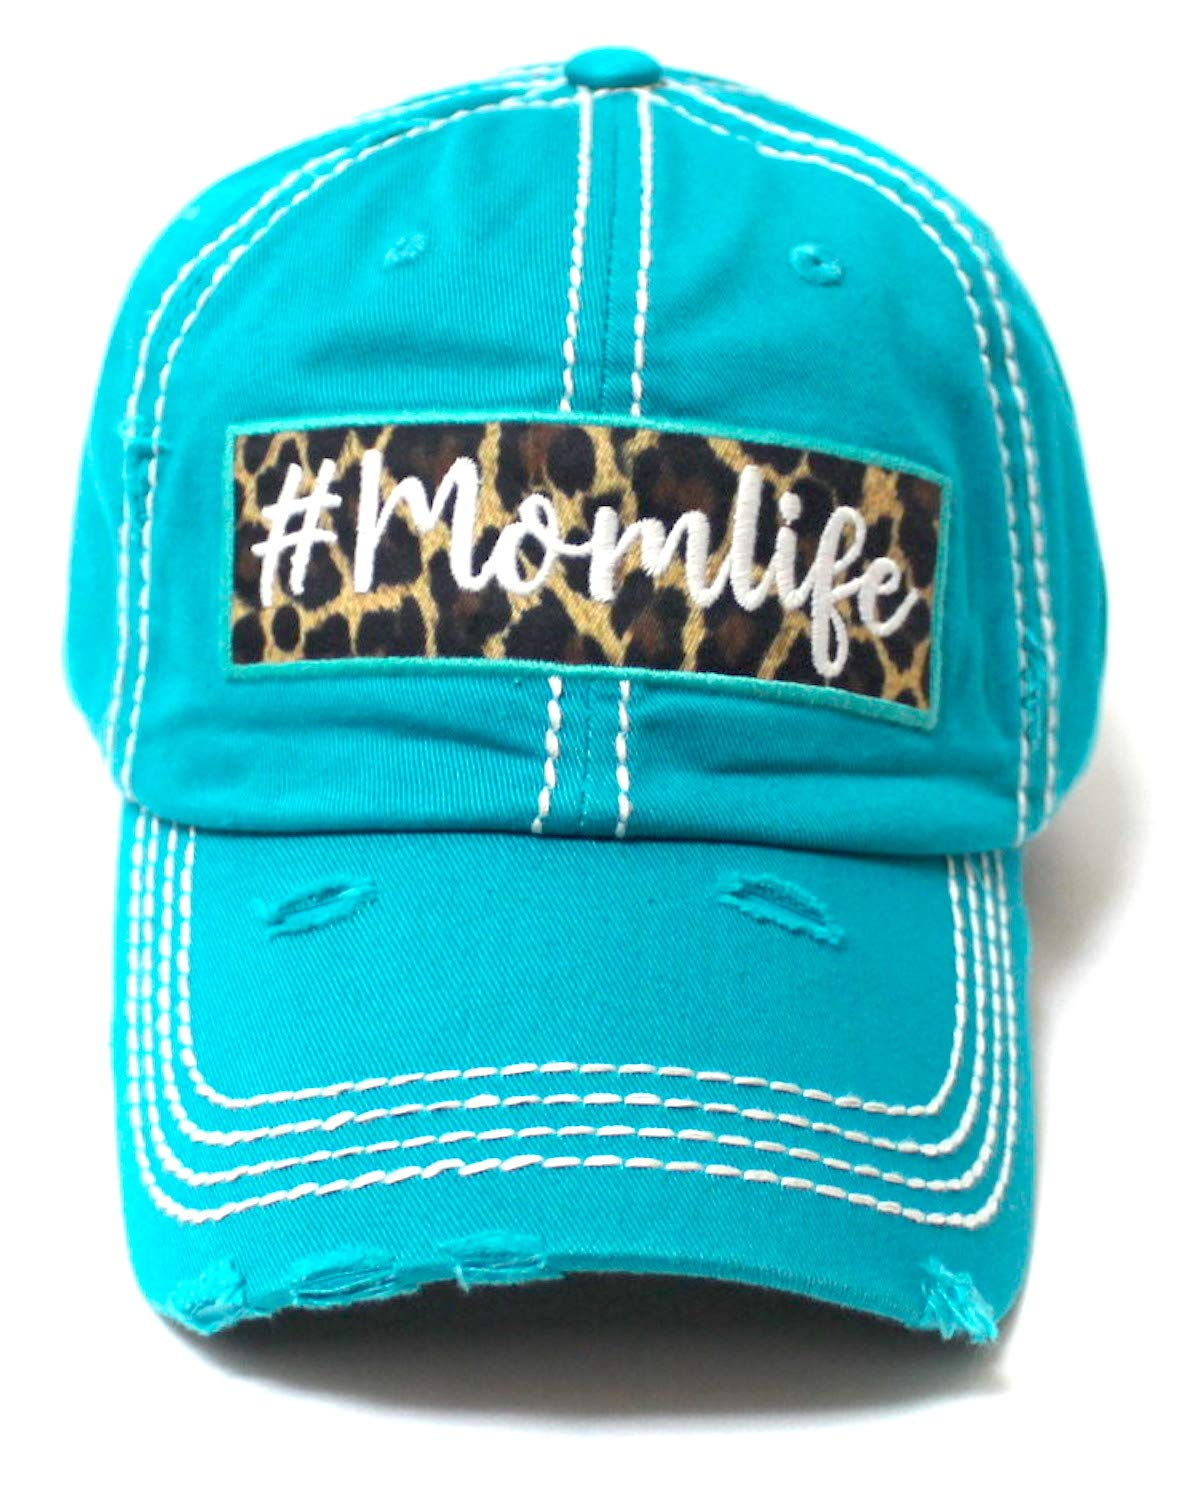 CAPS 'N VINTAGE Women's Distressed Cap #Momlife Leopard Print Patch Embroidery Monogram Hat, California Beach Blue - Caps 'N Vintage